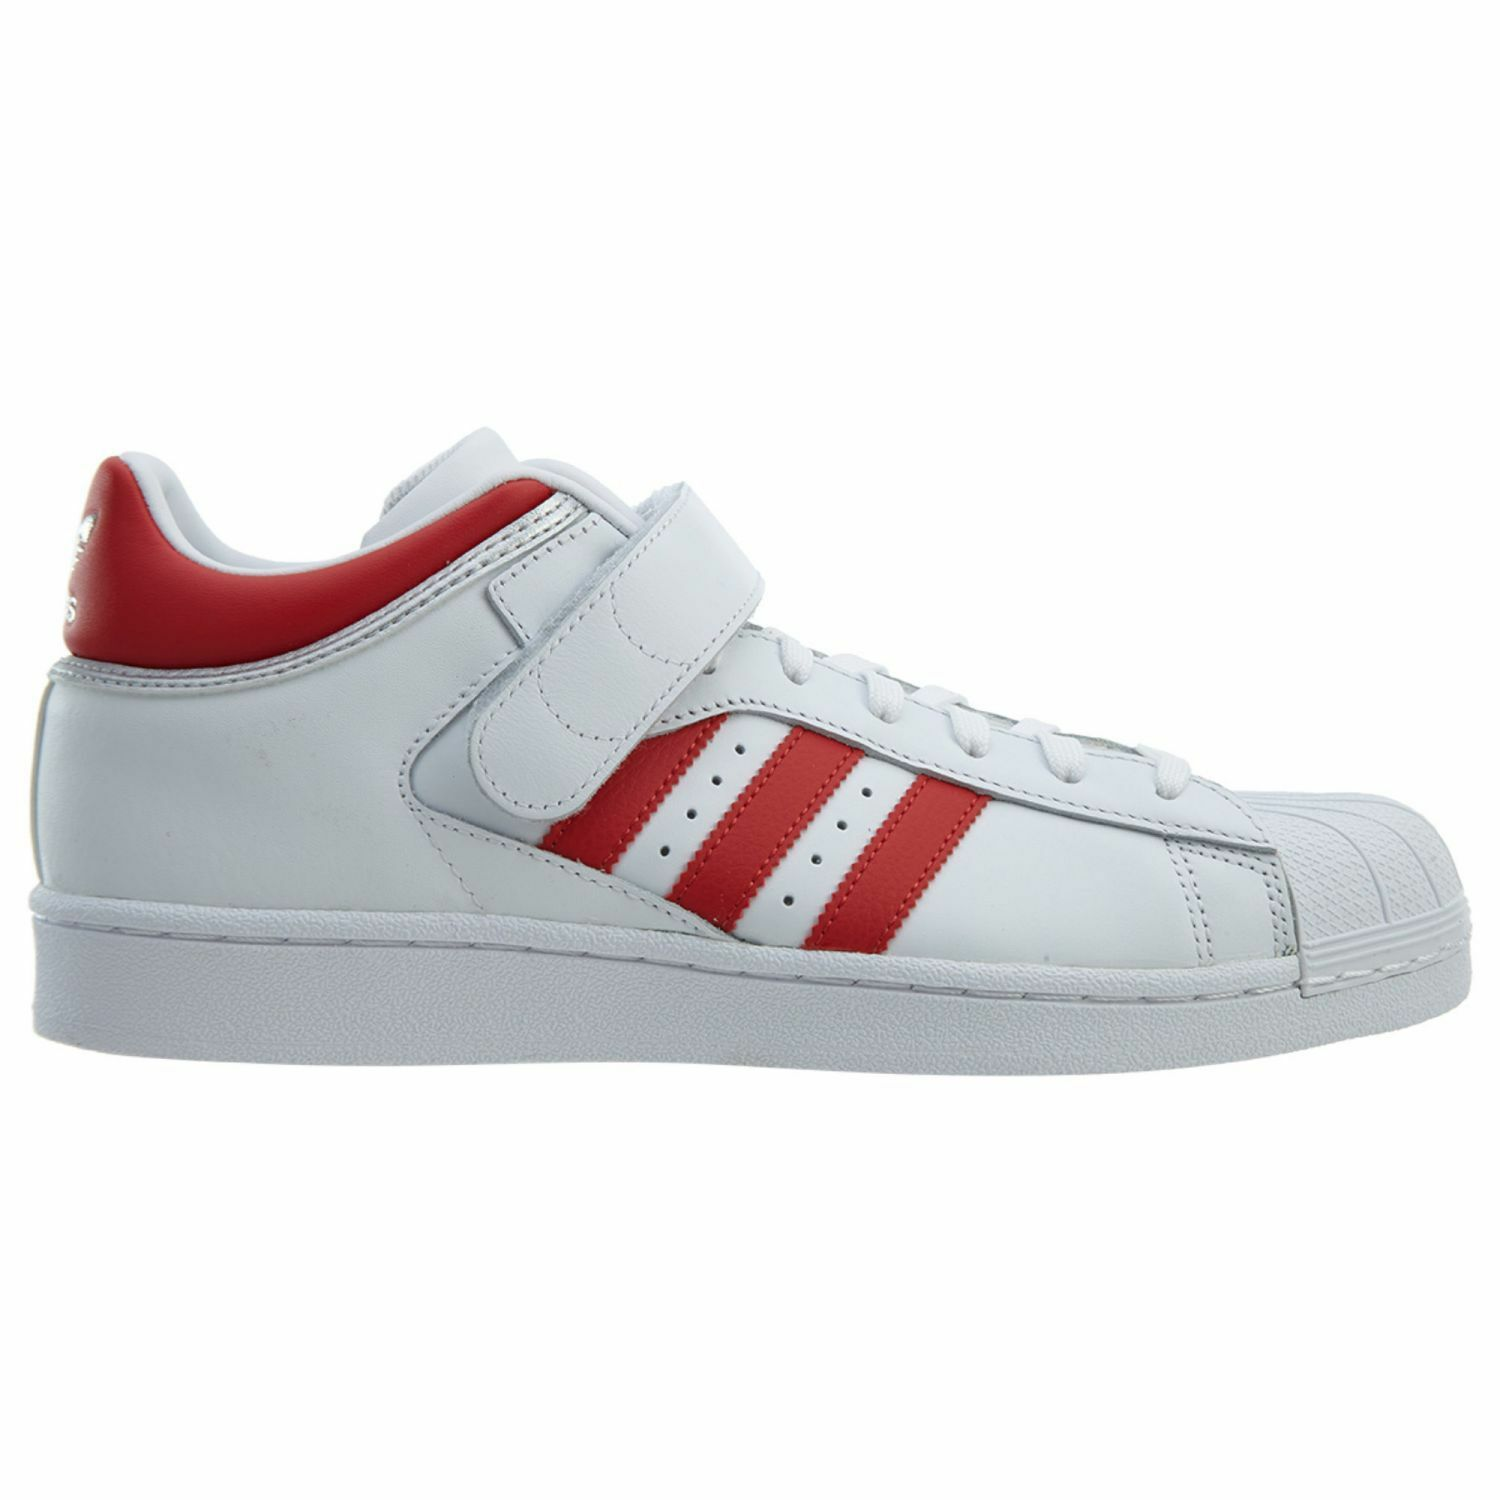 Adidas Pro Shell Mens BY4384 White Scarlet Red Leather Strap Shoes Size 6.5